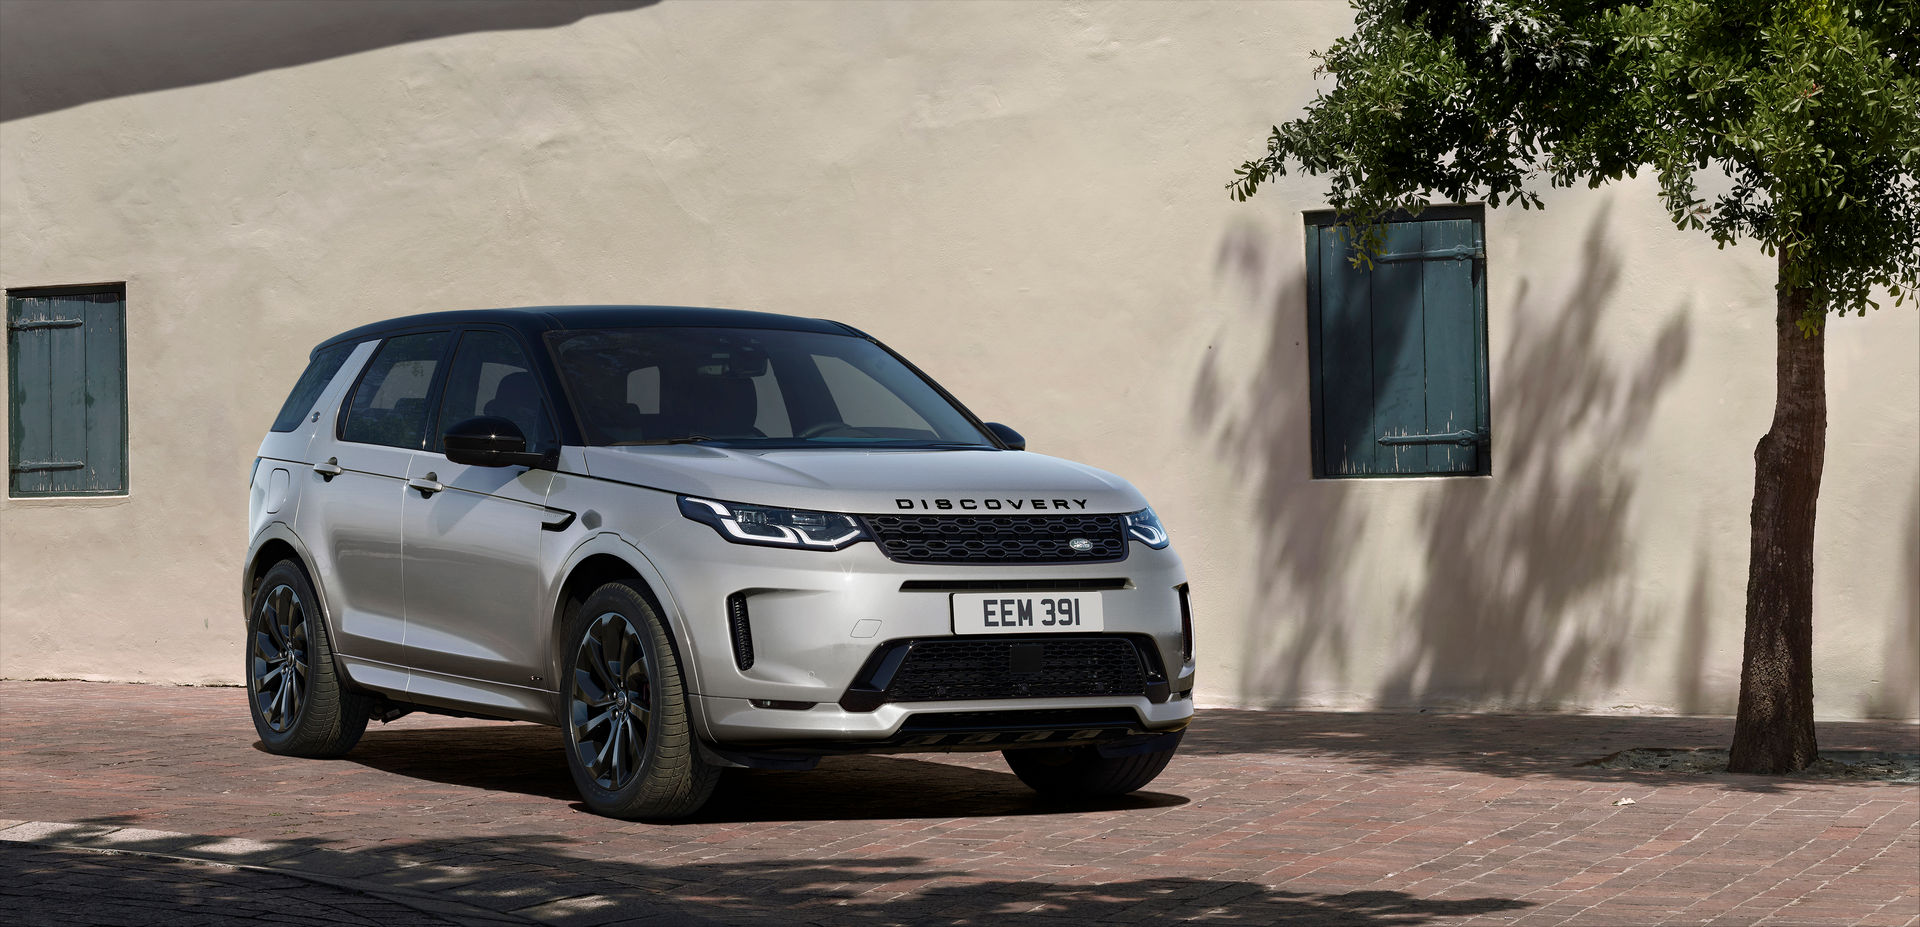 Land-Rover-Discovery-Sport-6-880x420.jpg